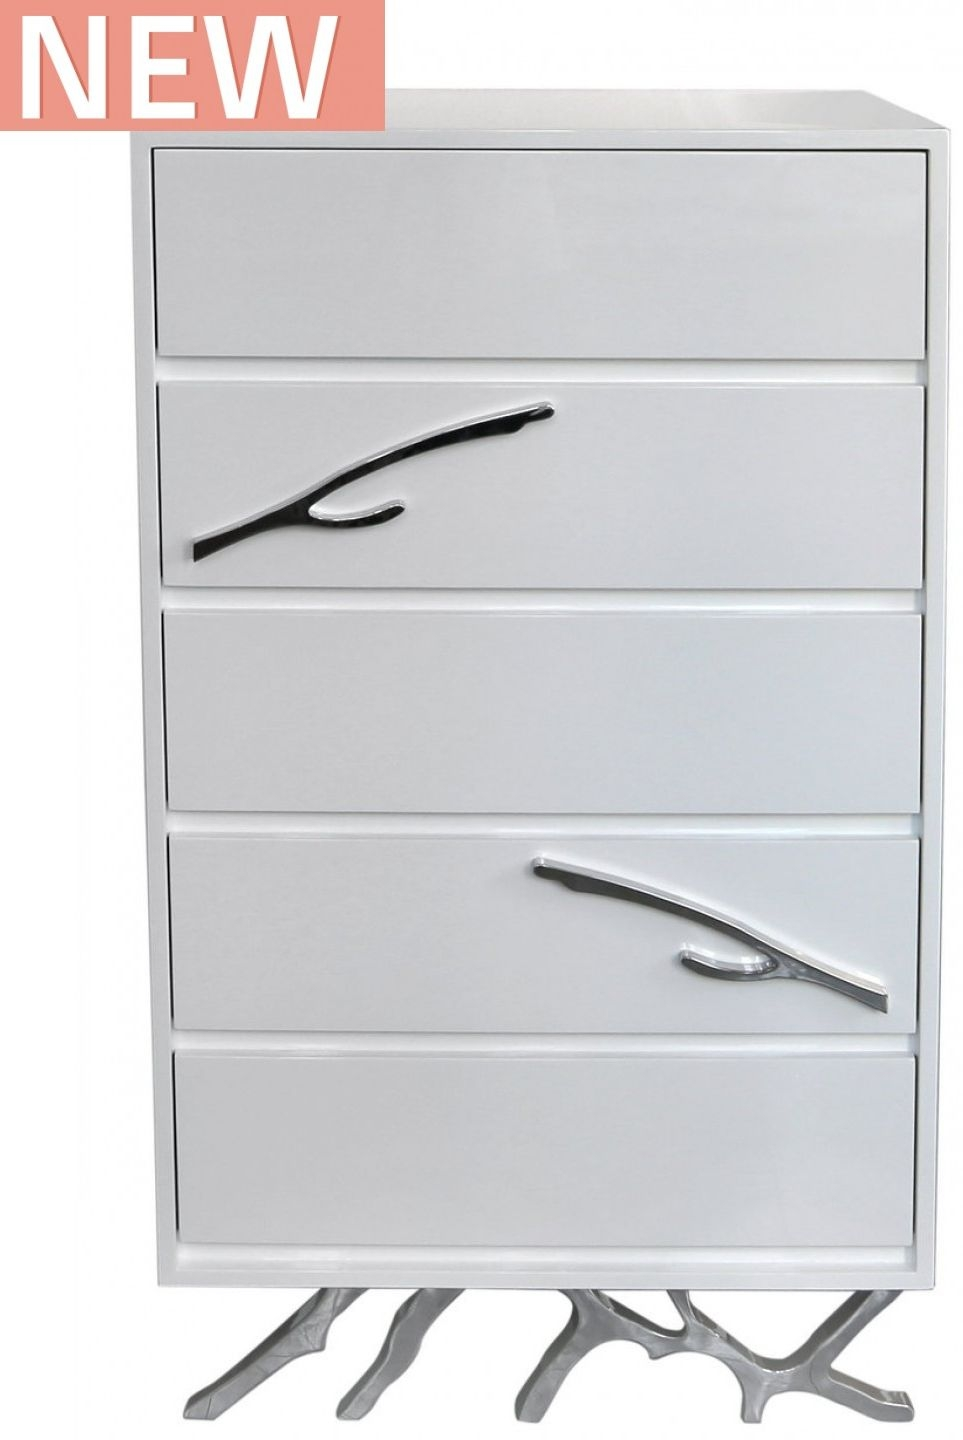 Palermo White Stainless Steel Chest of Drawer - Tall 5 Drawer